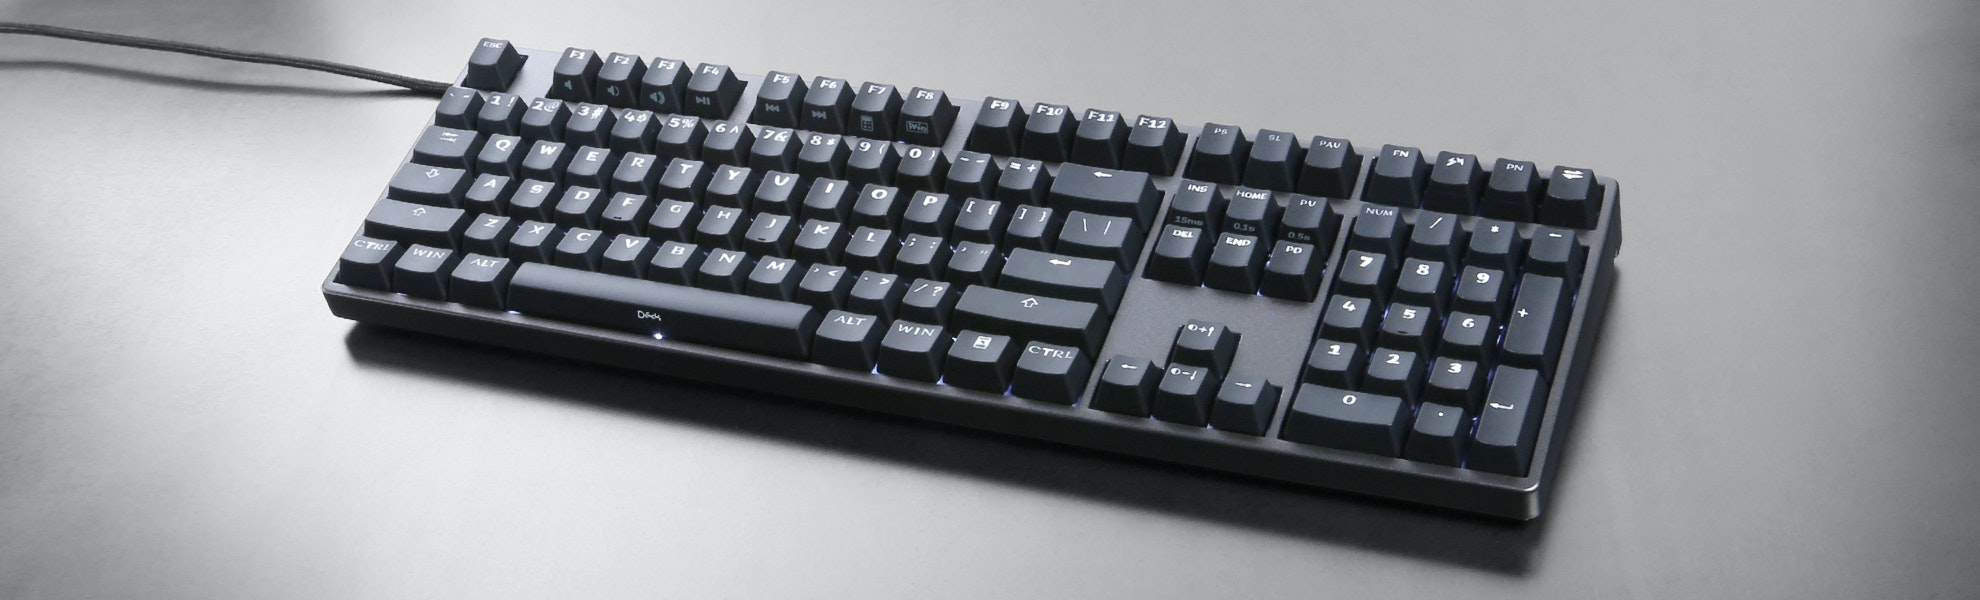 Deck Hassium Pro Keyboard with Palmrest